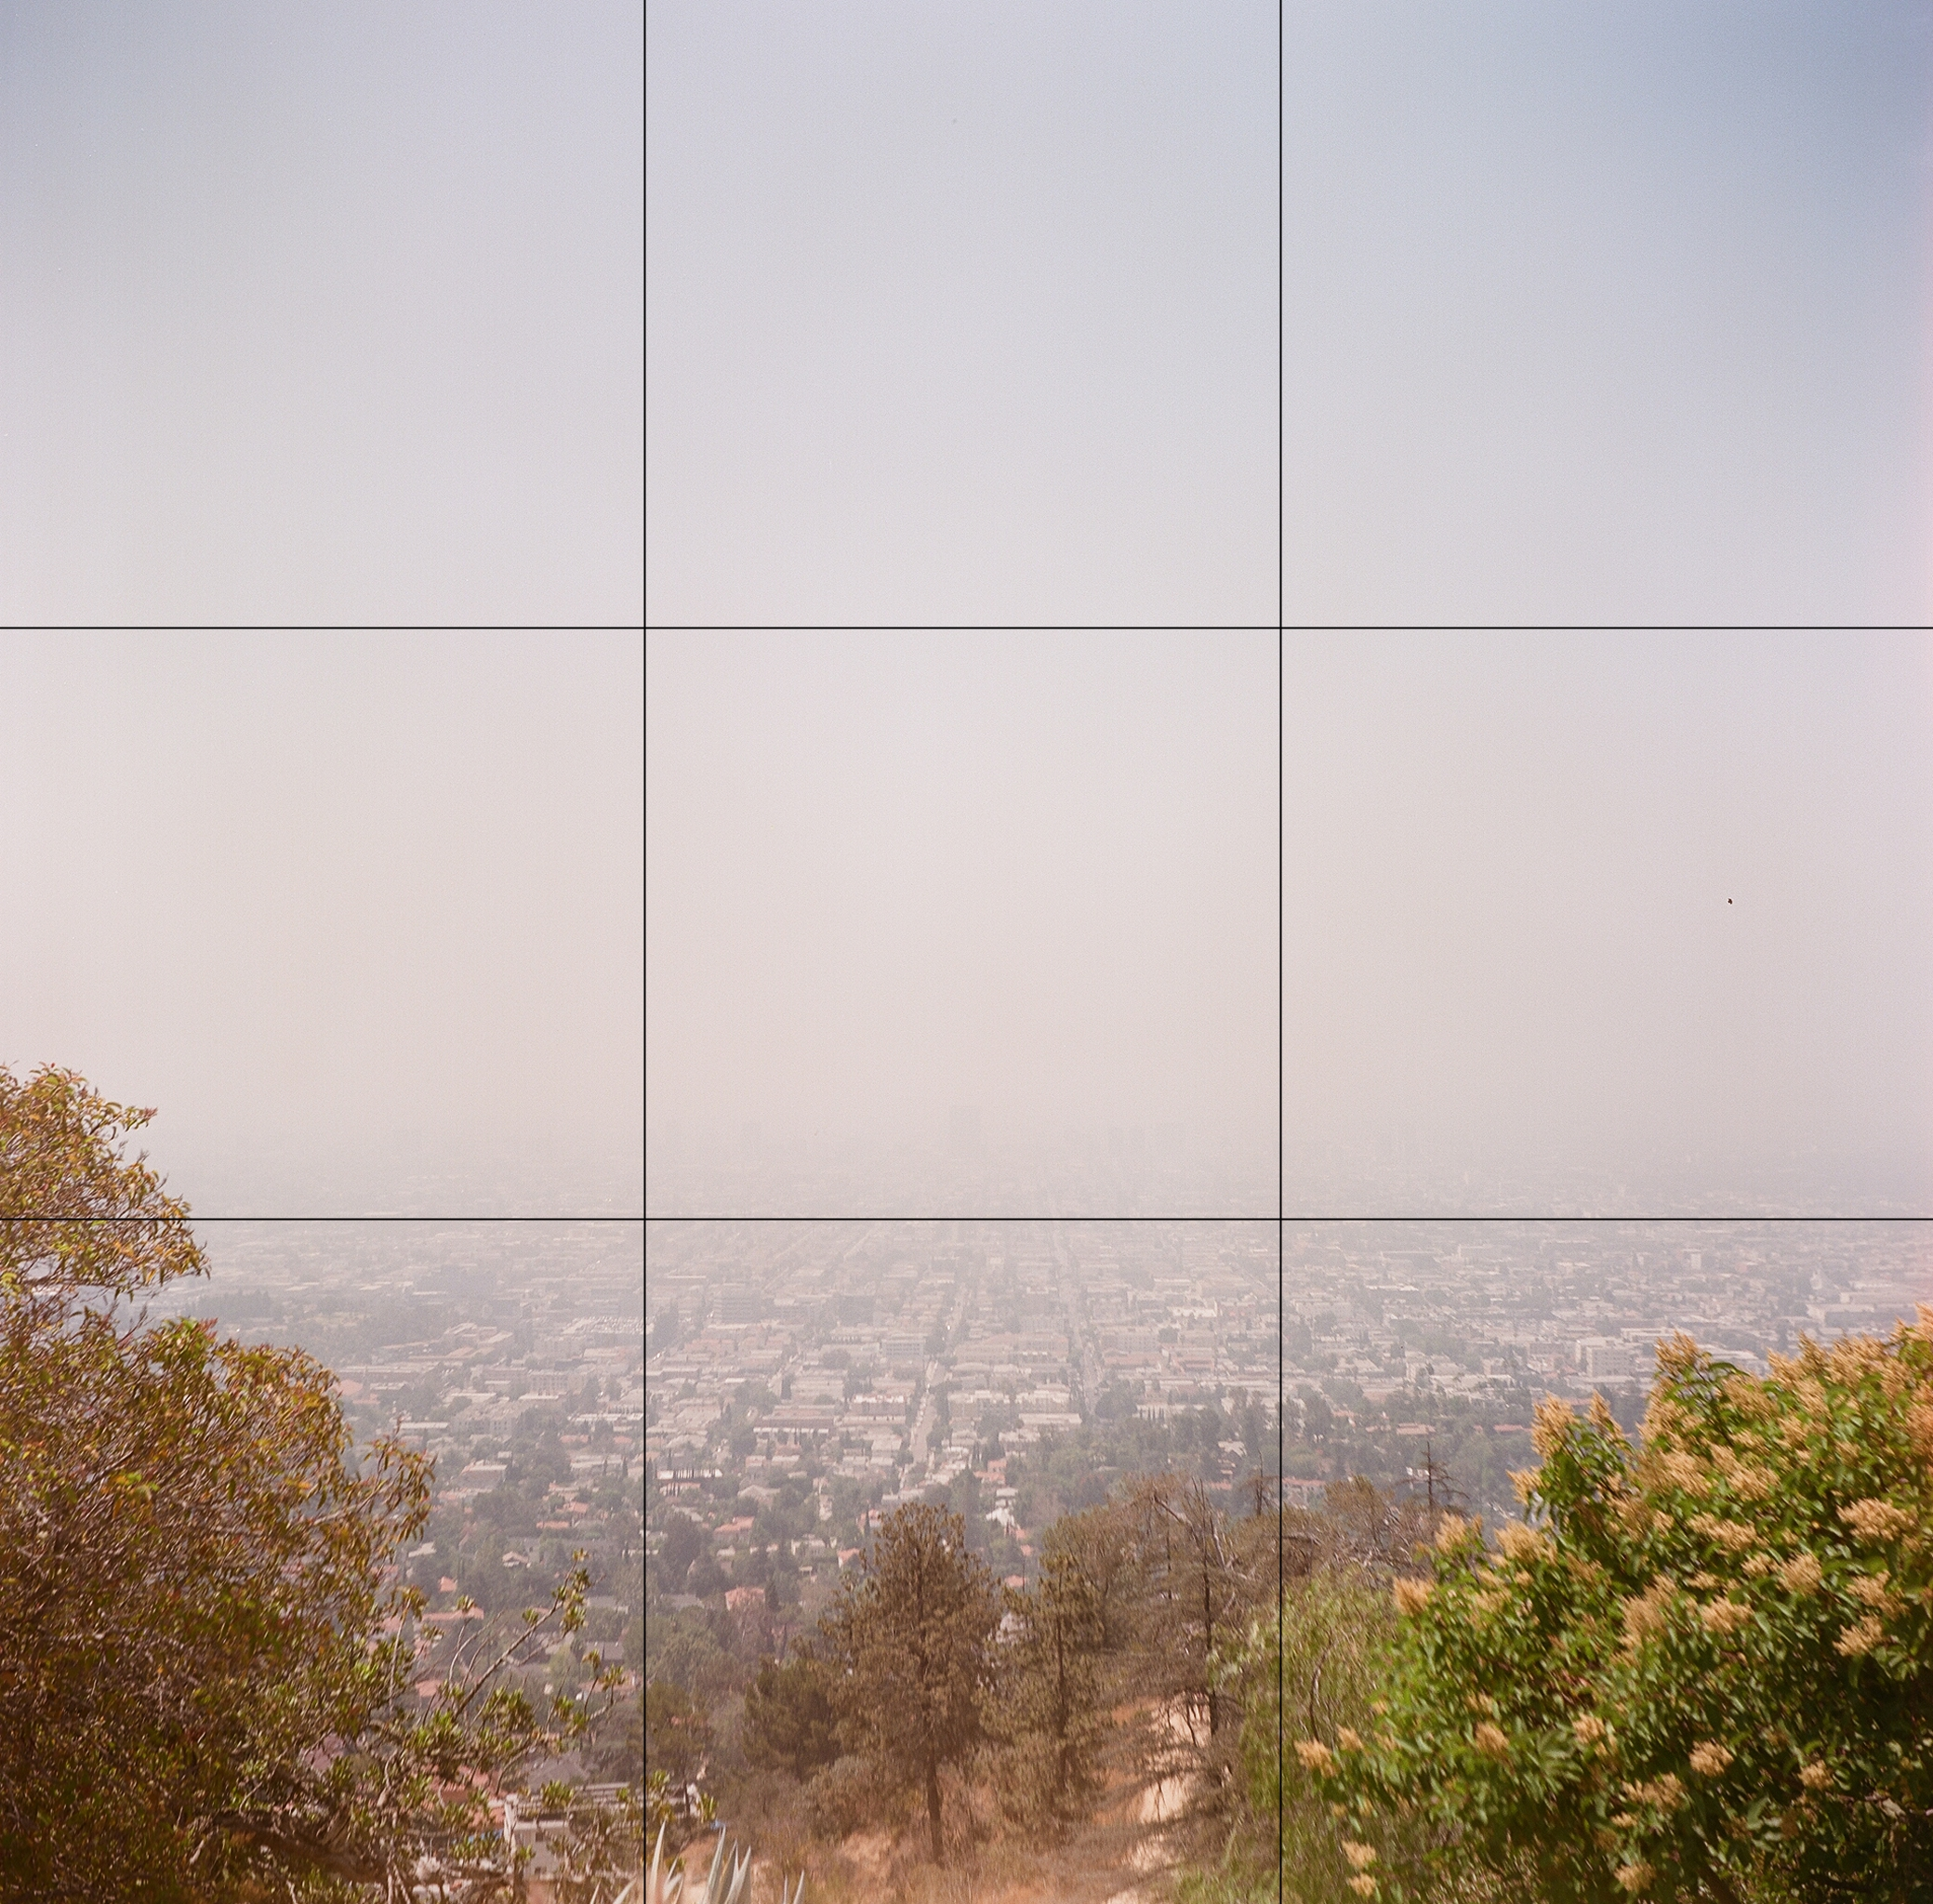 Example of use of the Rule of Thirds in Landscape